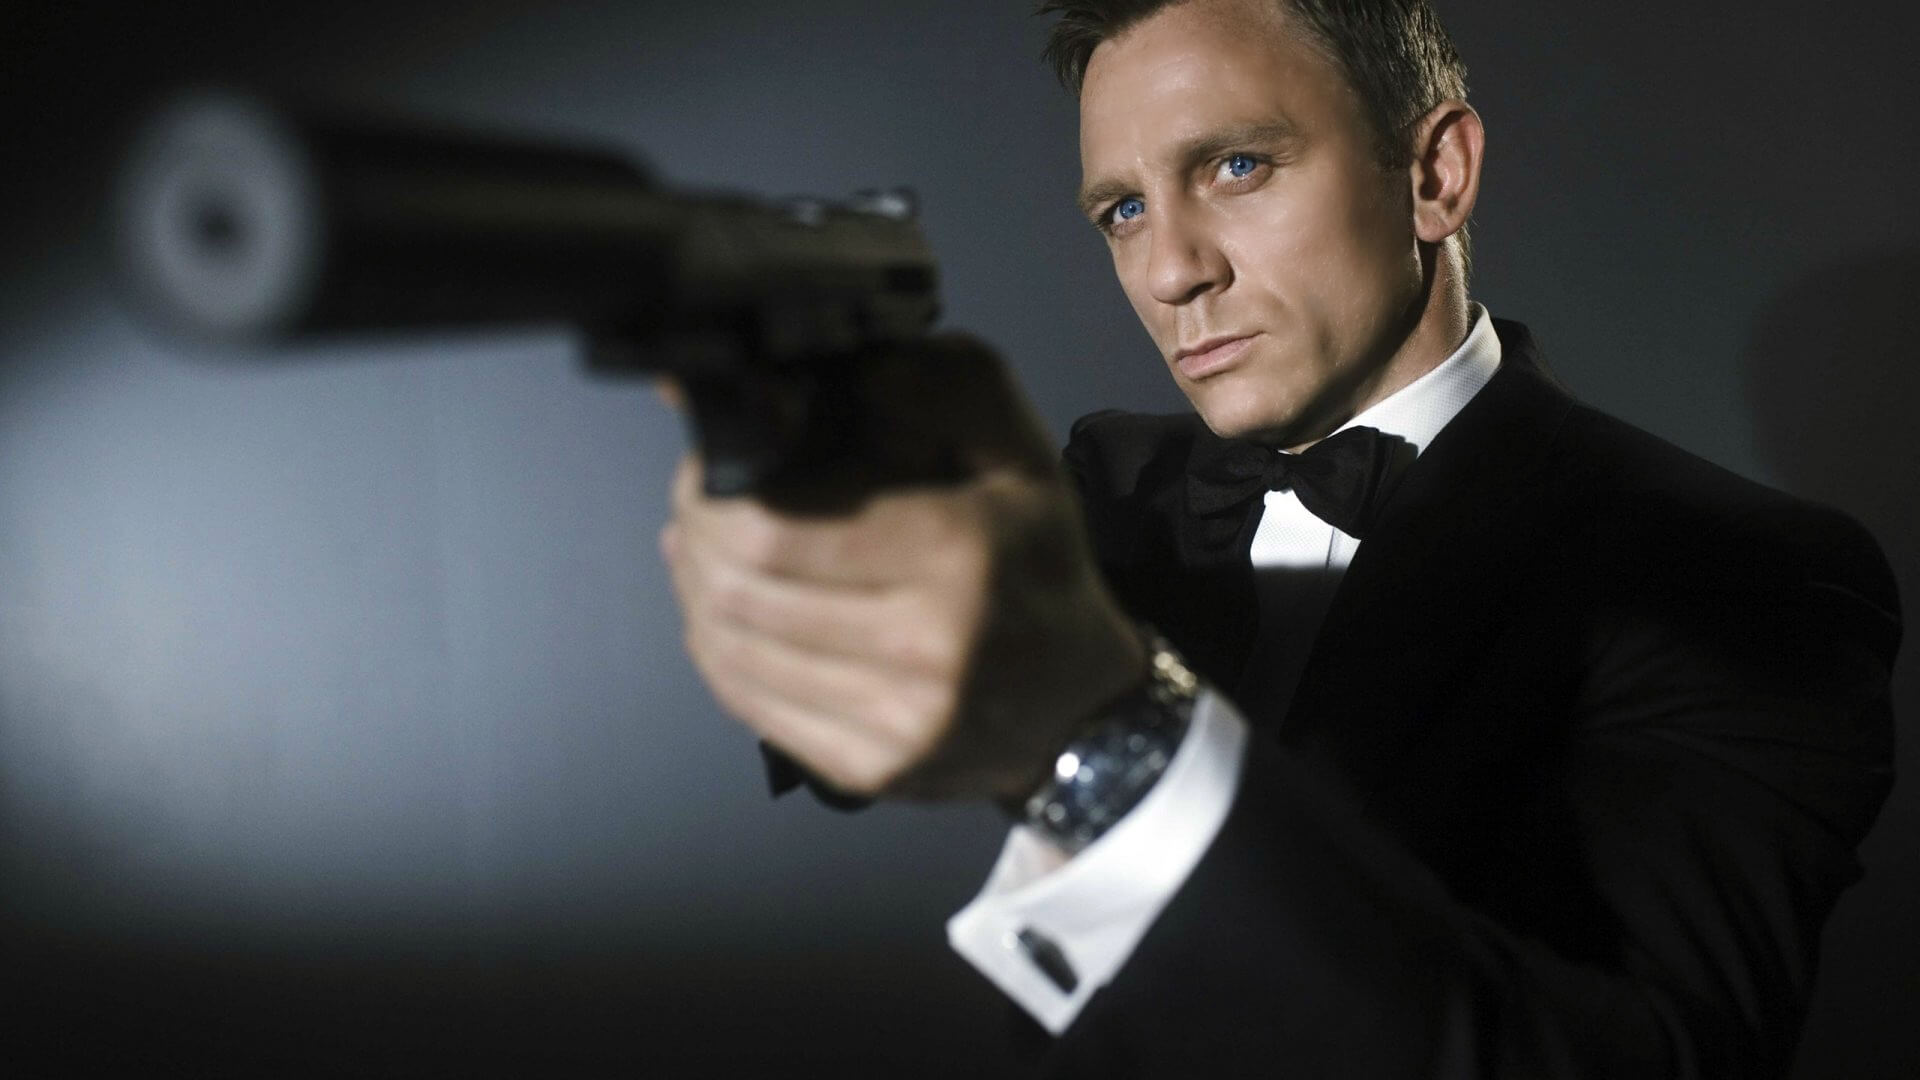 Female Director On Shortlist For New James Bond Movie